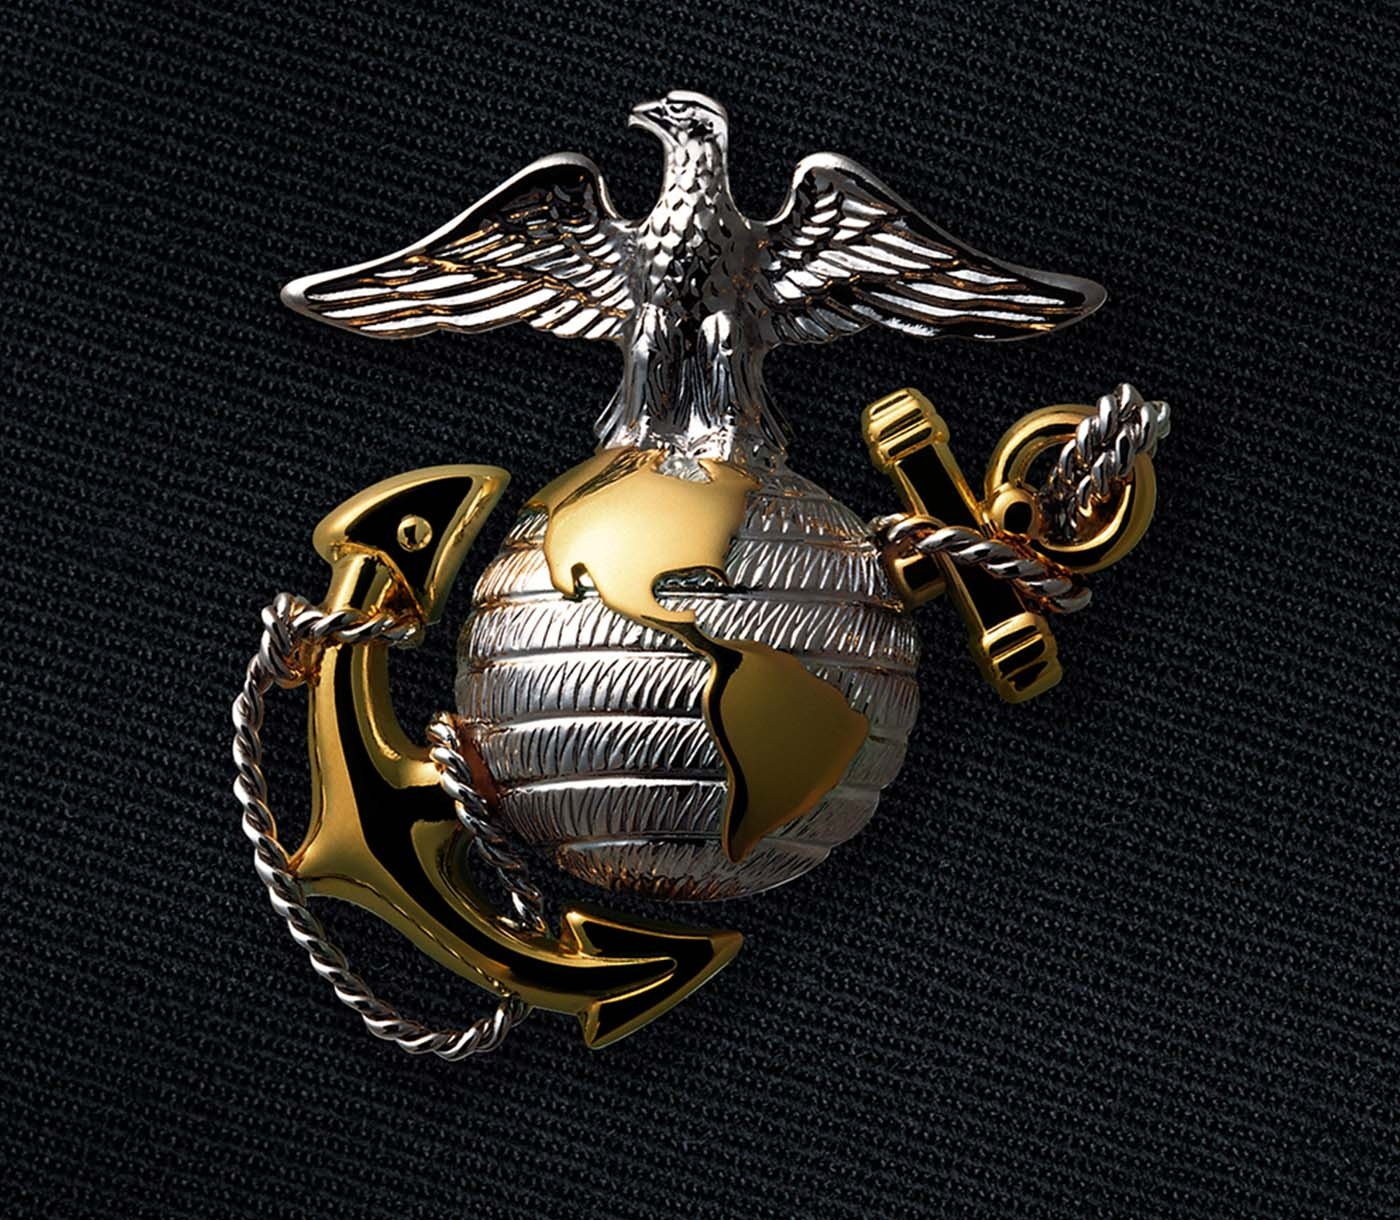 Marine Officer emblem